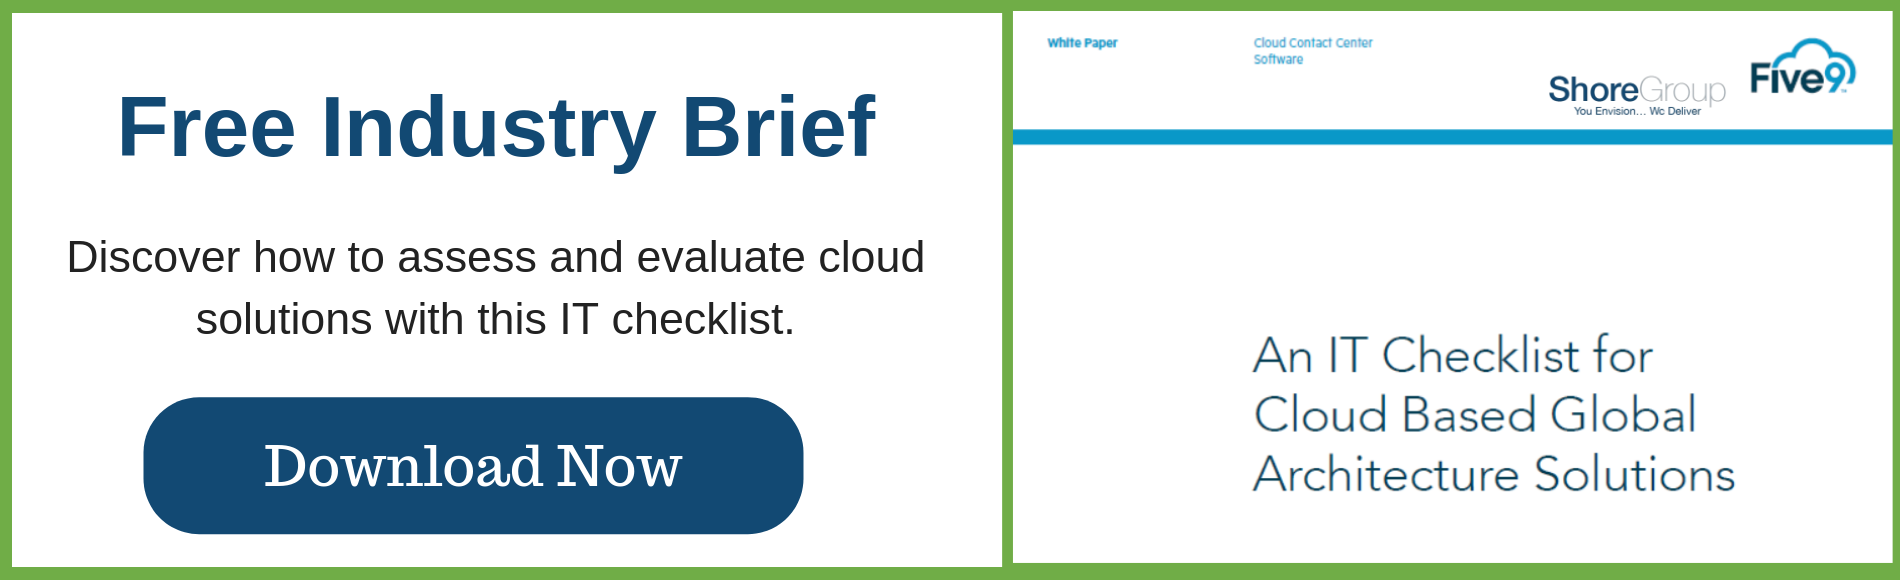 IT checklist for cloud based achitecture